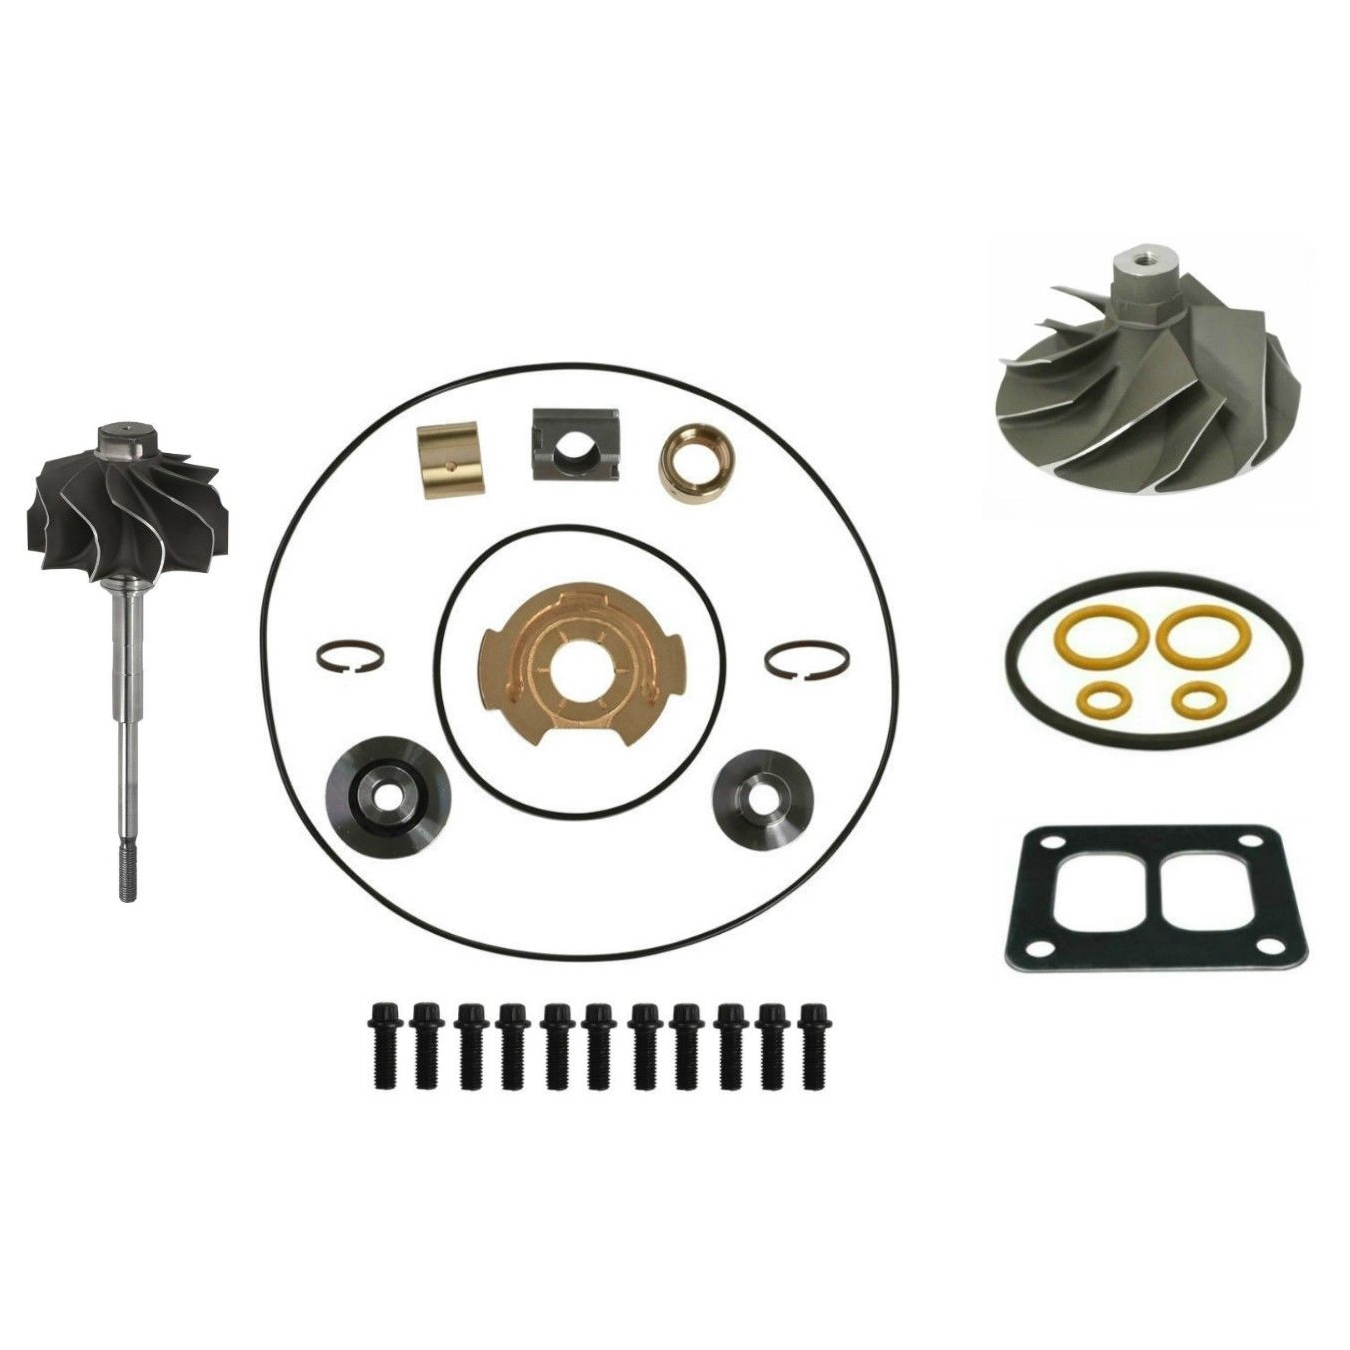 TP38 Master Turbo Rebuild Kit Cast Compressor Wheel For 94-97 7.3L Ford Powerstroke Diesel